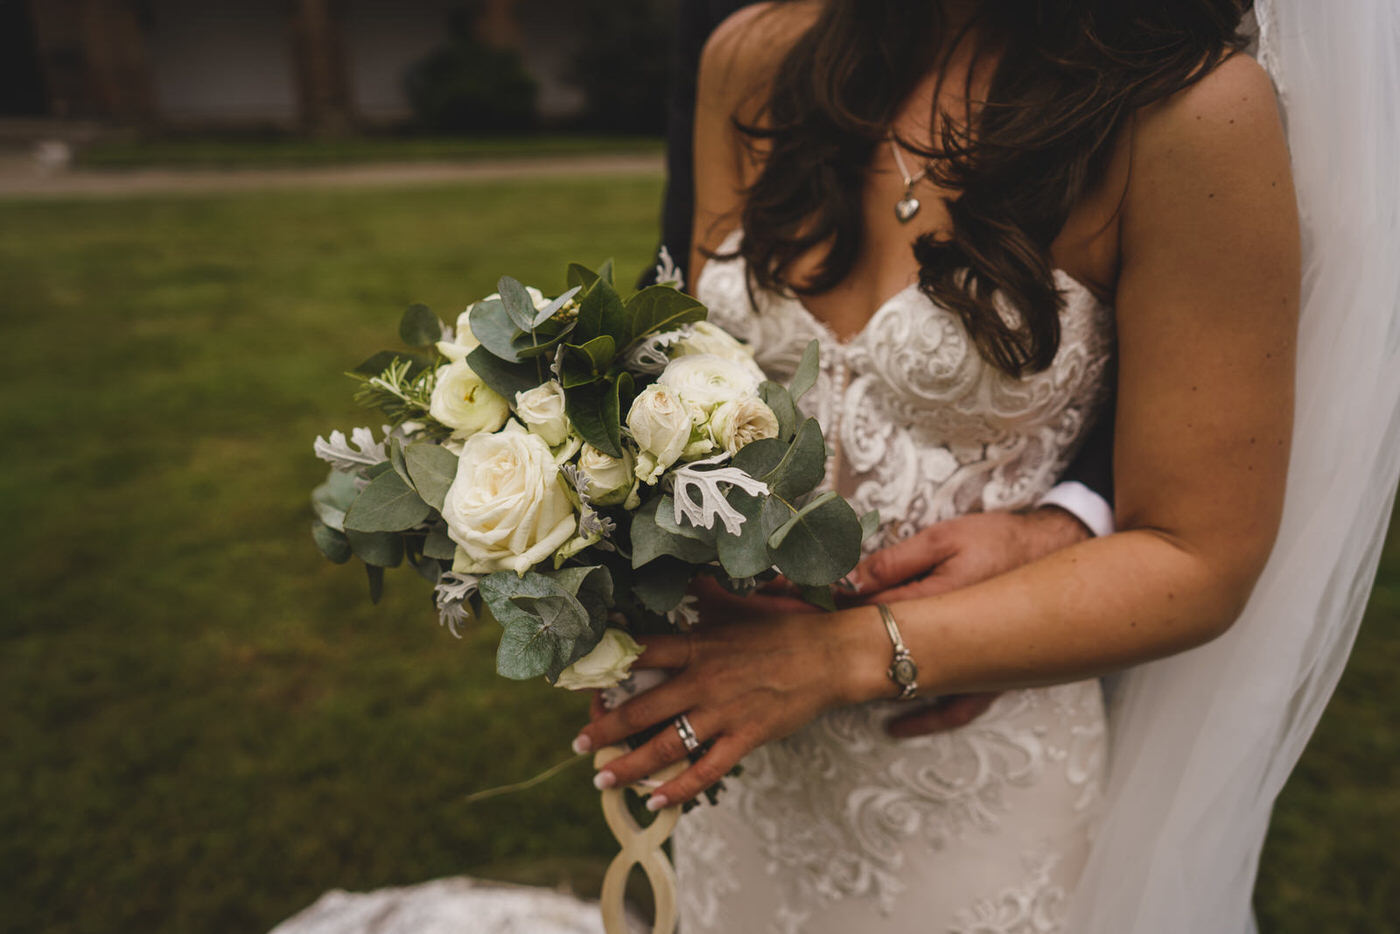 the bride's jewelry and her wonderful wedding bouquet take centre stage as the groom holds her tightly